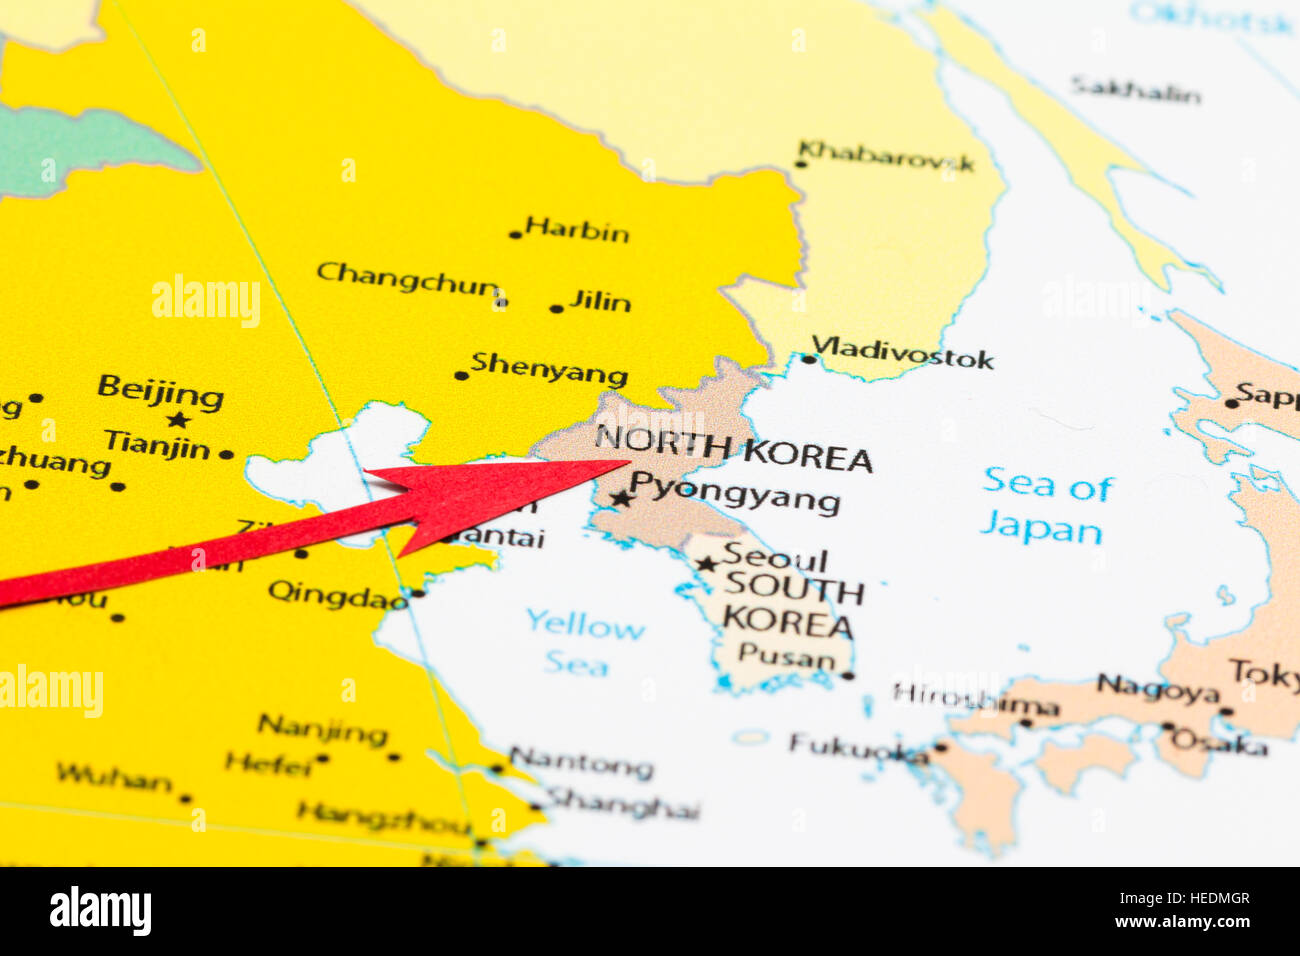 Red arrow pointing North Korea on the map of Asia continent Stock